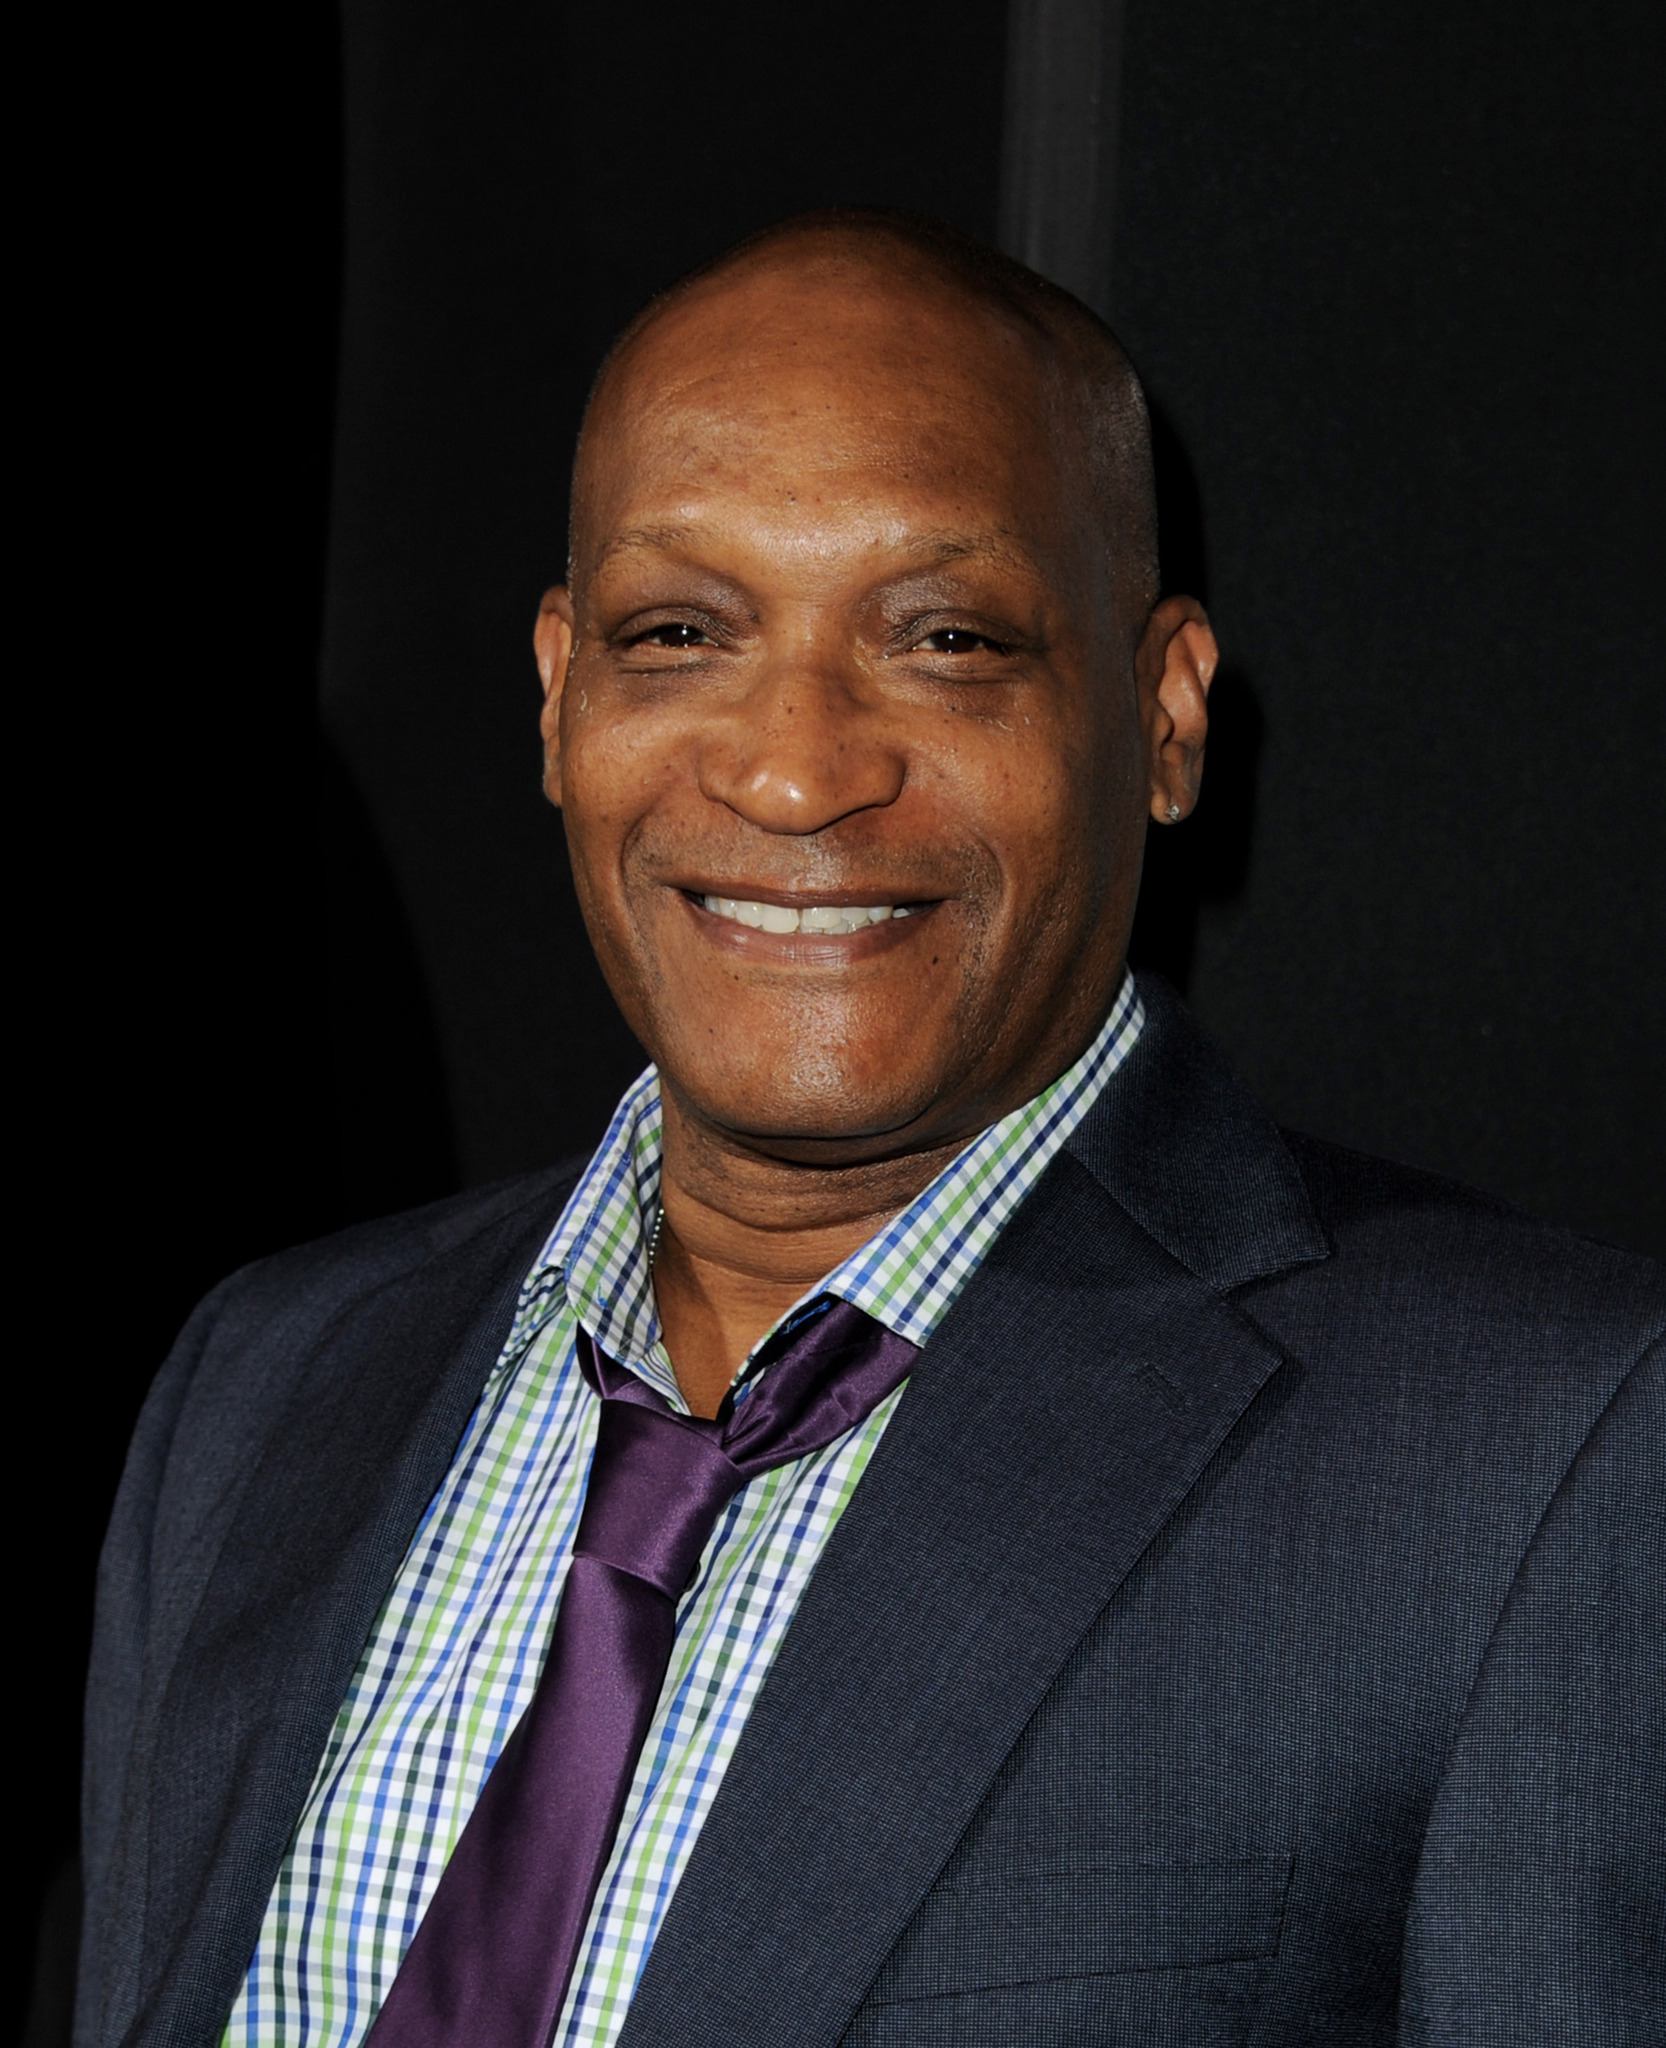 LOS ANGELES, CA - AUGUST 10: Actor Tony Todd arrives at a screening of New Line Cinema's